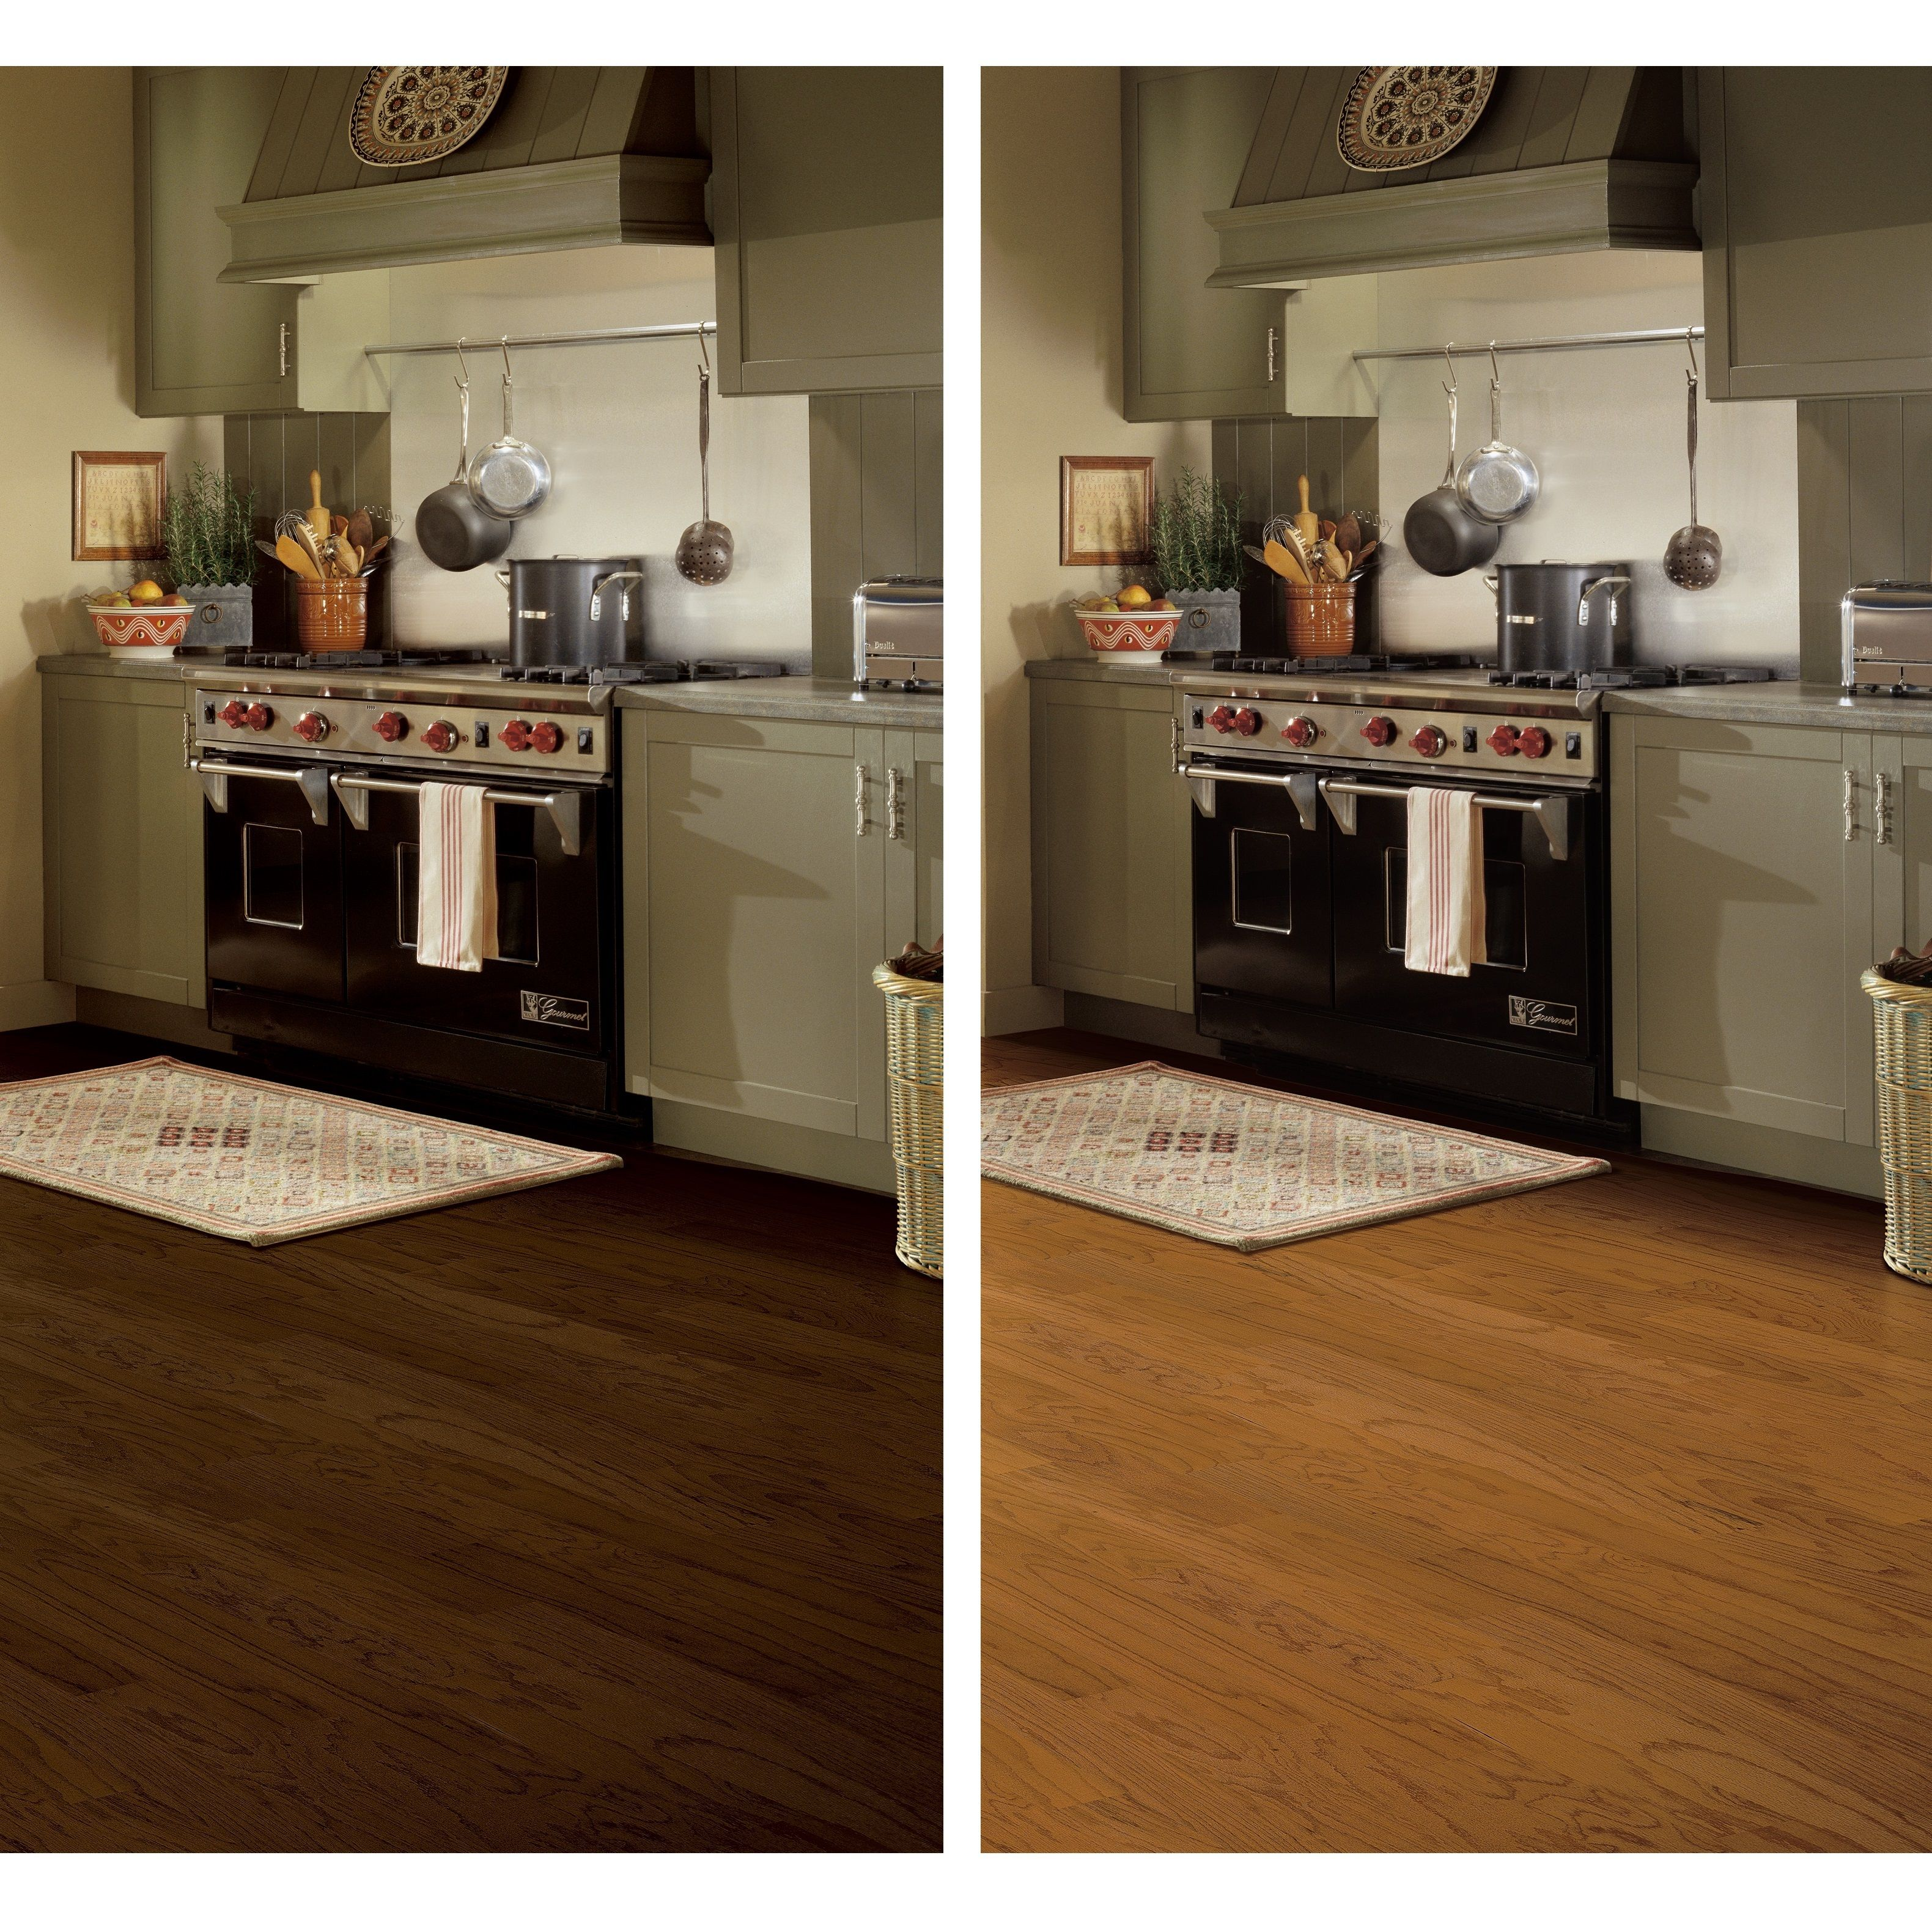 Maple Melamine Kitchen Cabinets Vs Wood Laminate Dark Vs Light Which Do You Prefer Dark Or